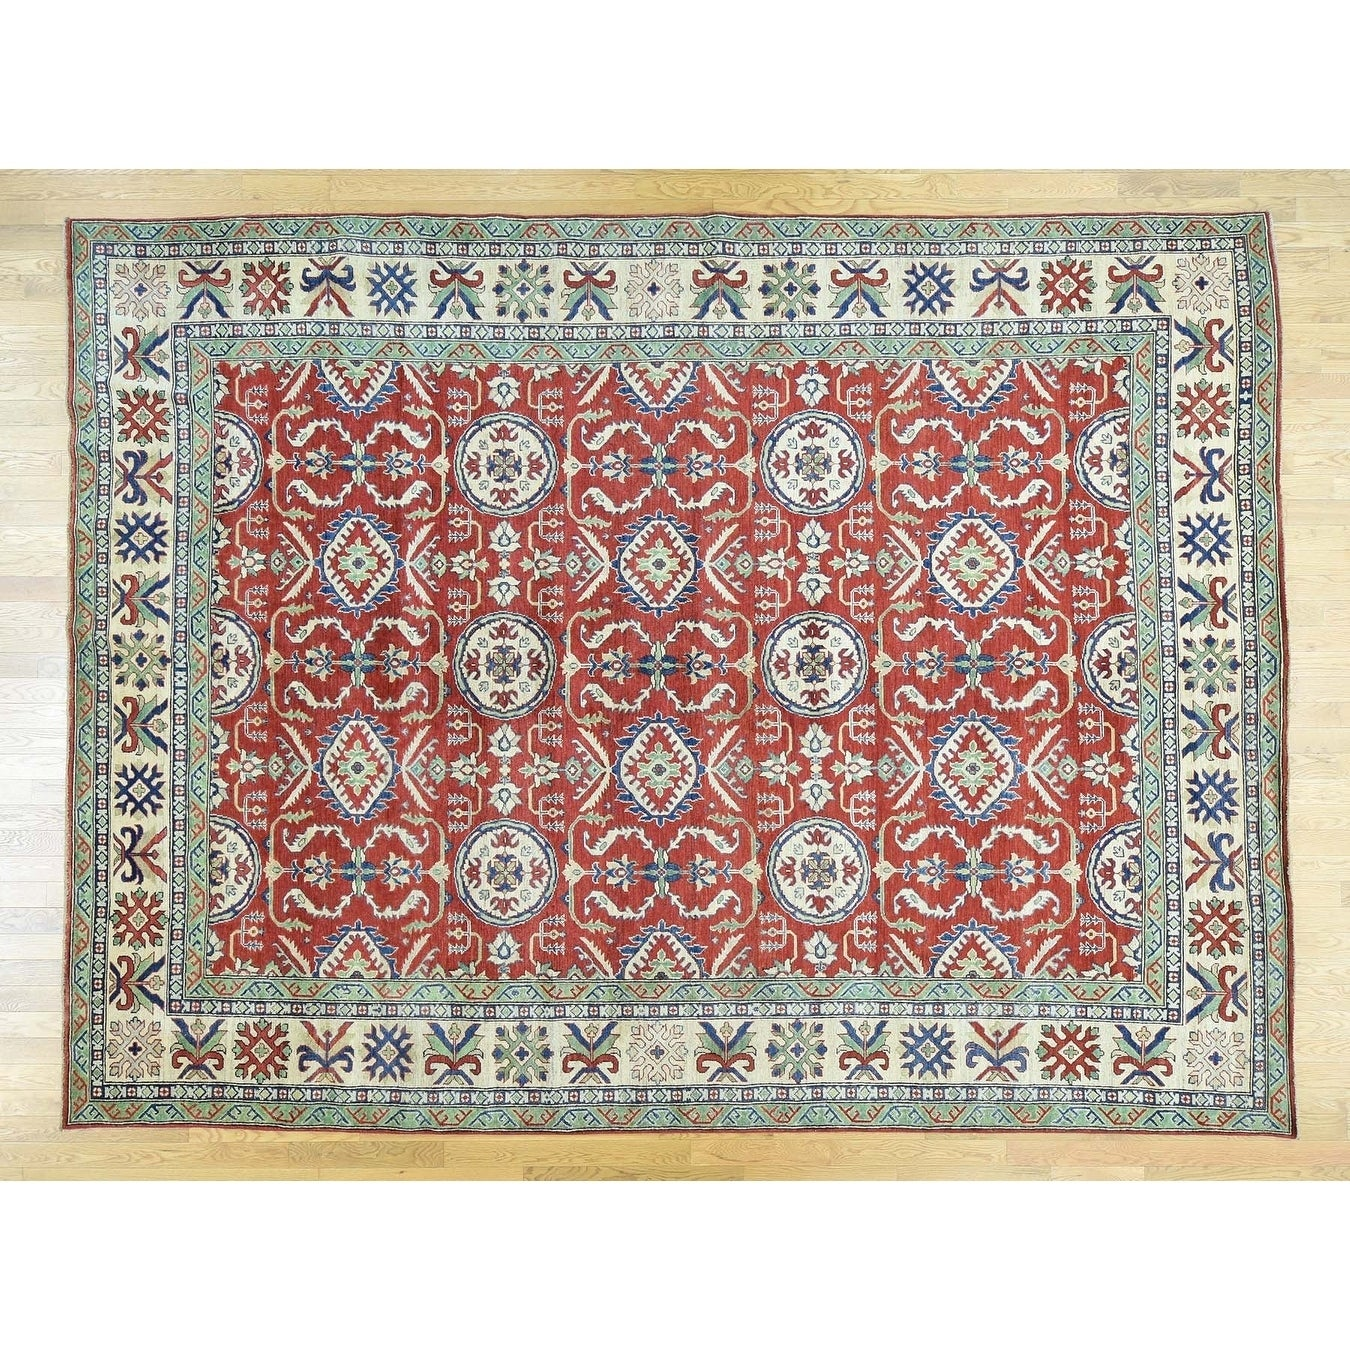 Hand Knotted Red Kazak with Wool Oriental Rug - 910 x 13